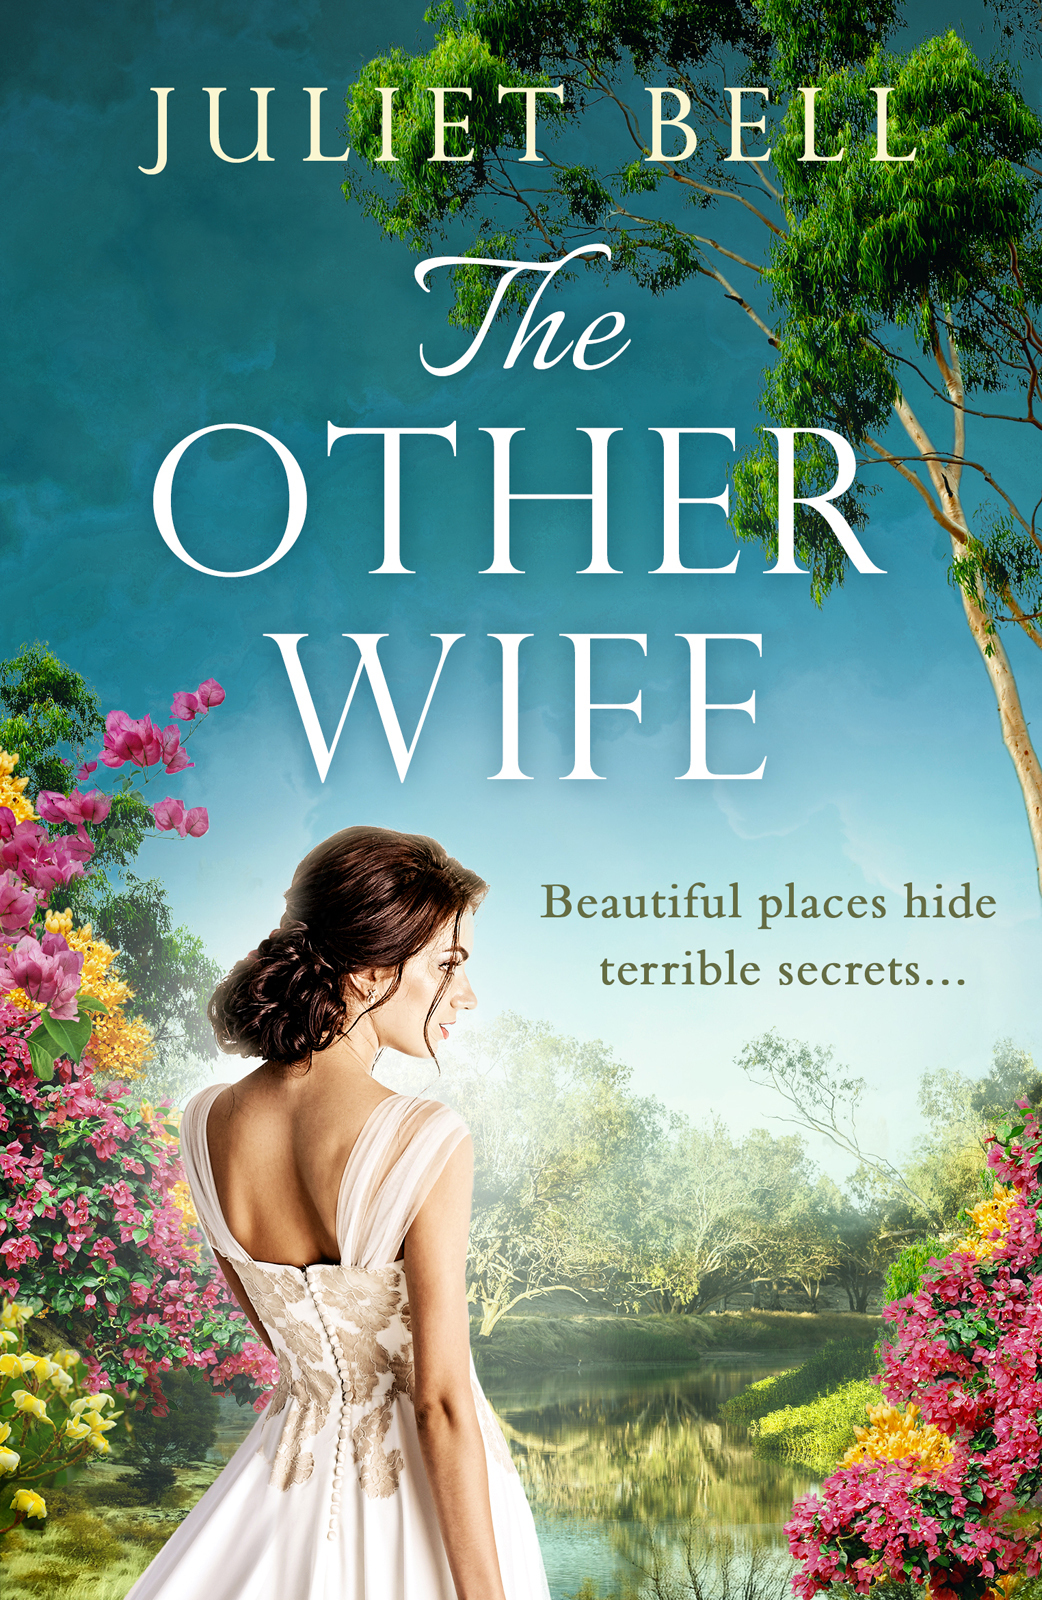 Juliet Bell The Other Wife: A sweeping historical romantic drama tinged with obsession and suspense